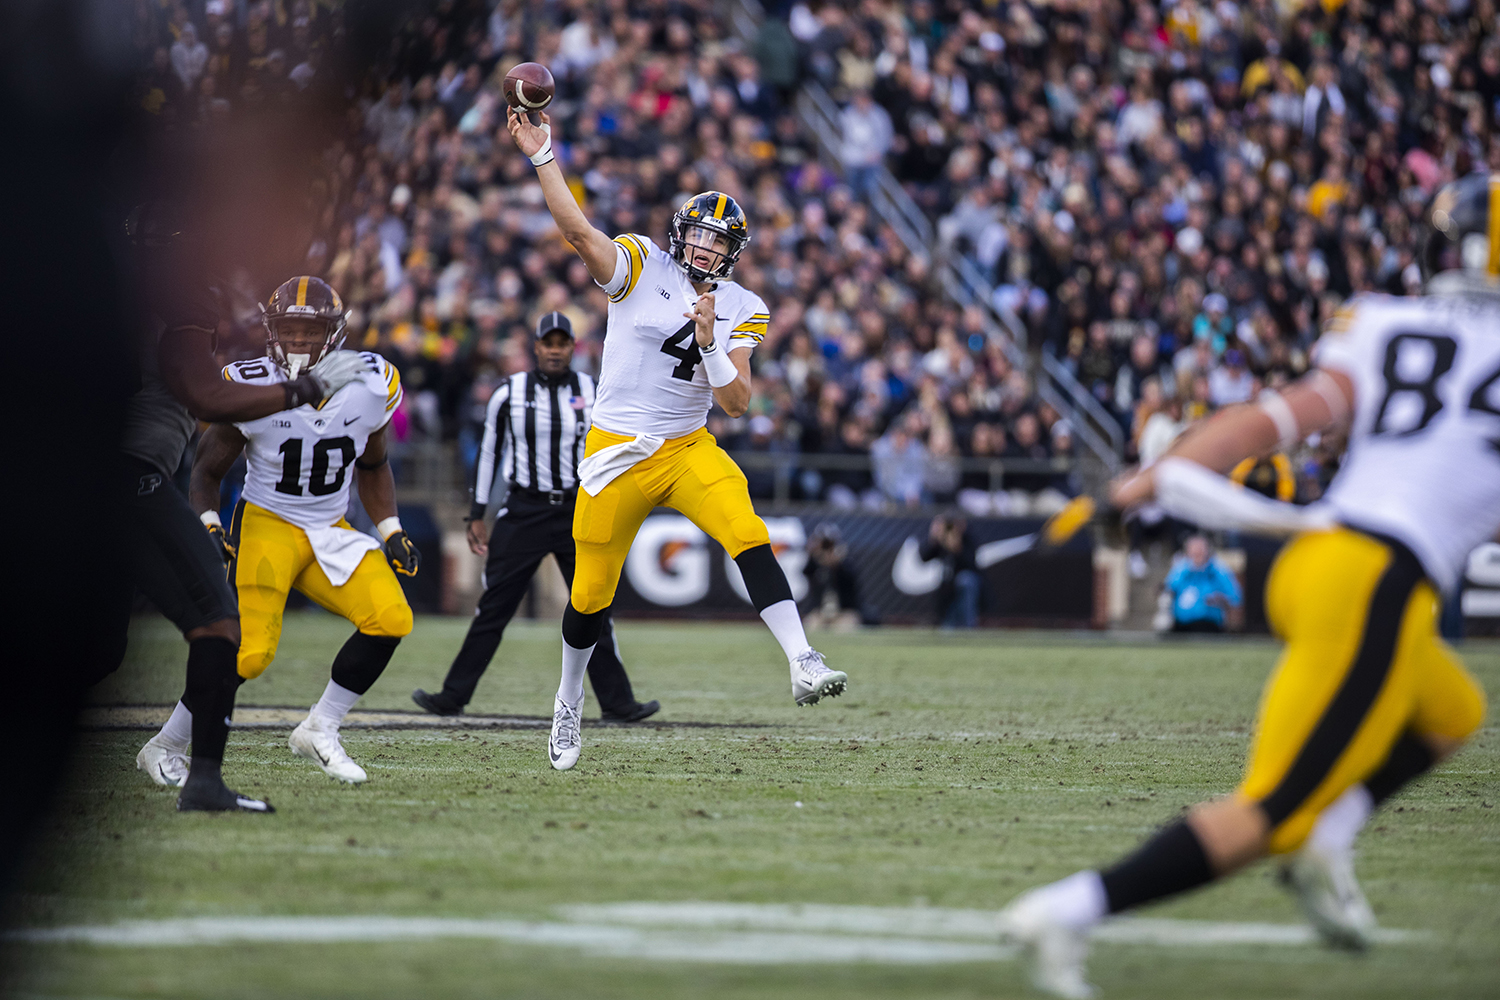 Iowa+quarterback+Nate+Stanley+throws+a+pass+during+the+Iowa%2FPurdue+game+at+Ross-Ade+Stadium+in+West+Lafayette%2C+Ind.+The+Boilermakers+defeated+the+Hawkeyes%2C+38-36%2C+with+a+last+second+field+goal.+